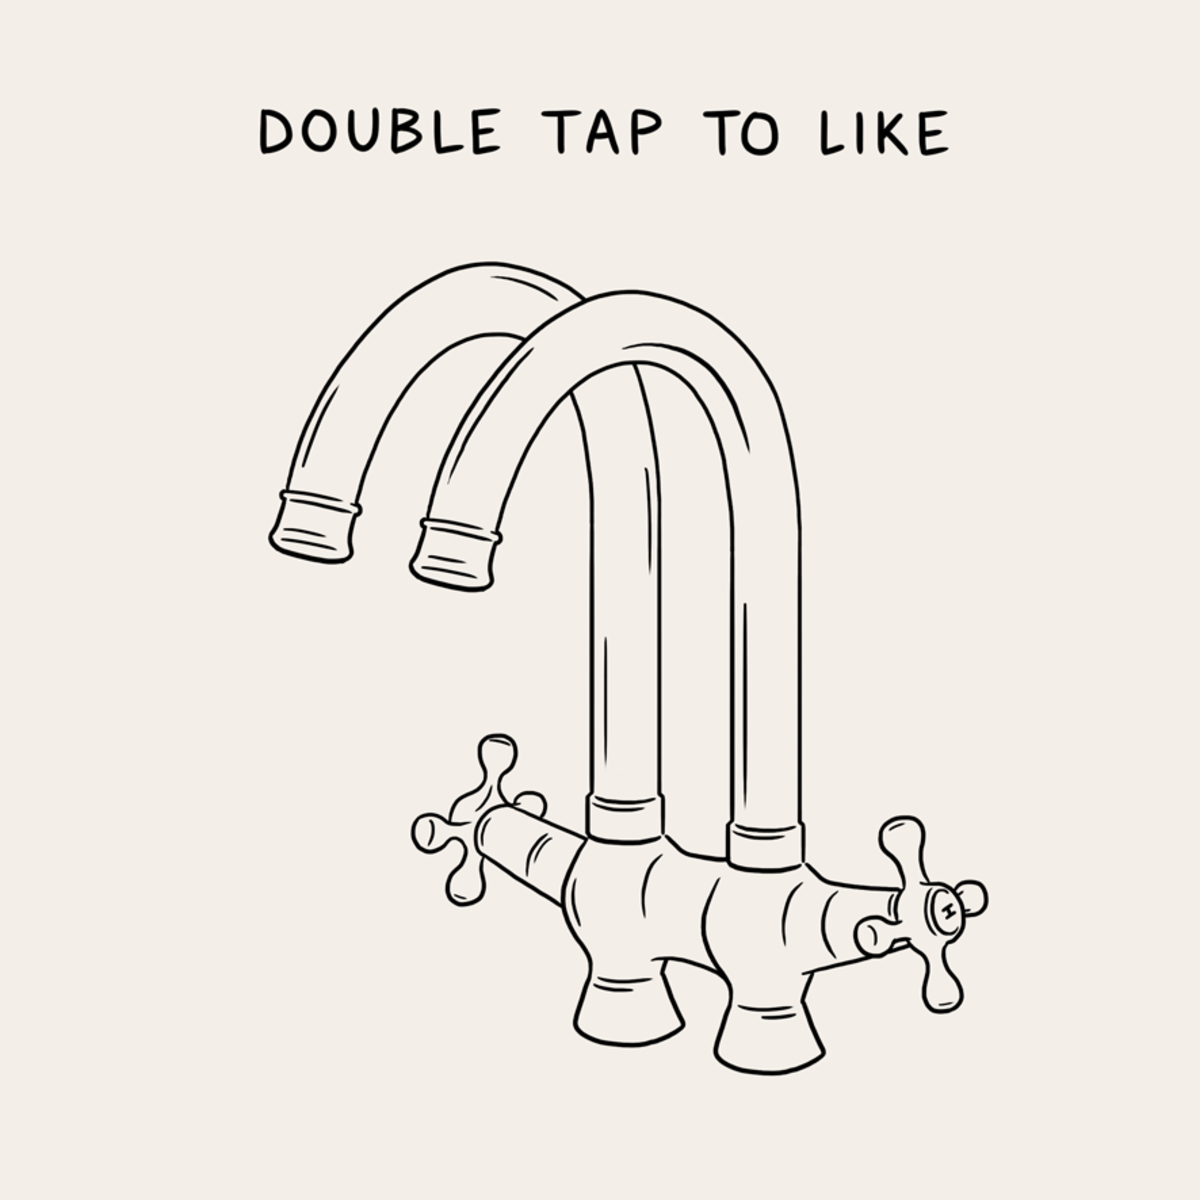 Matt Blease